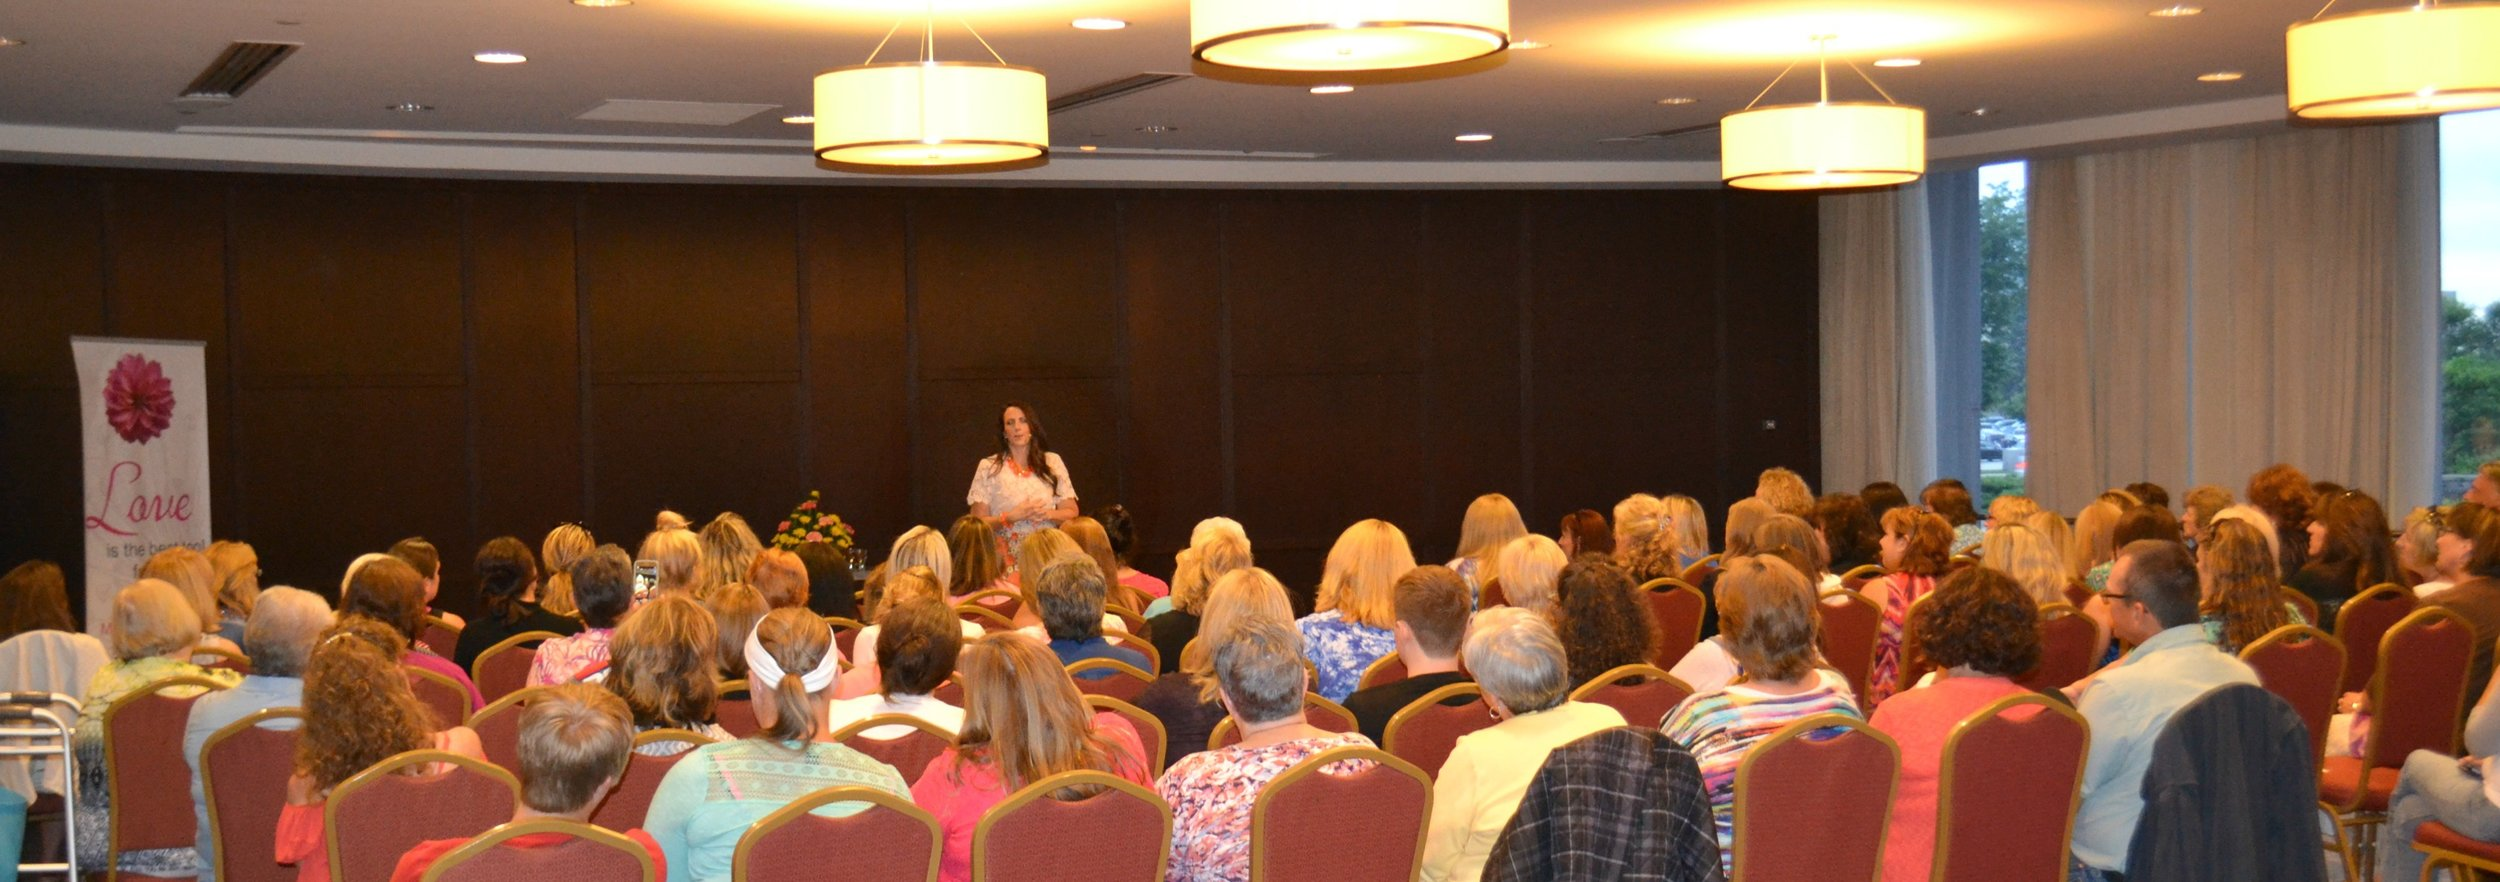 Psychic Medium Mollie Morning Star Group Reading Madison, WI October 14, 2016